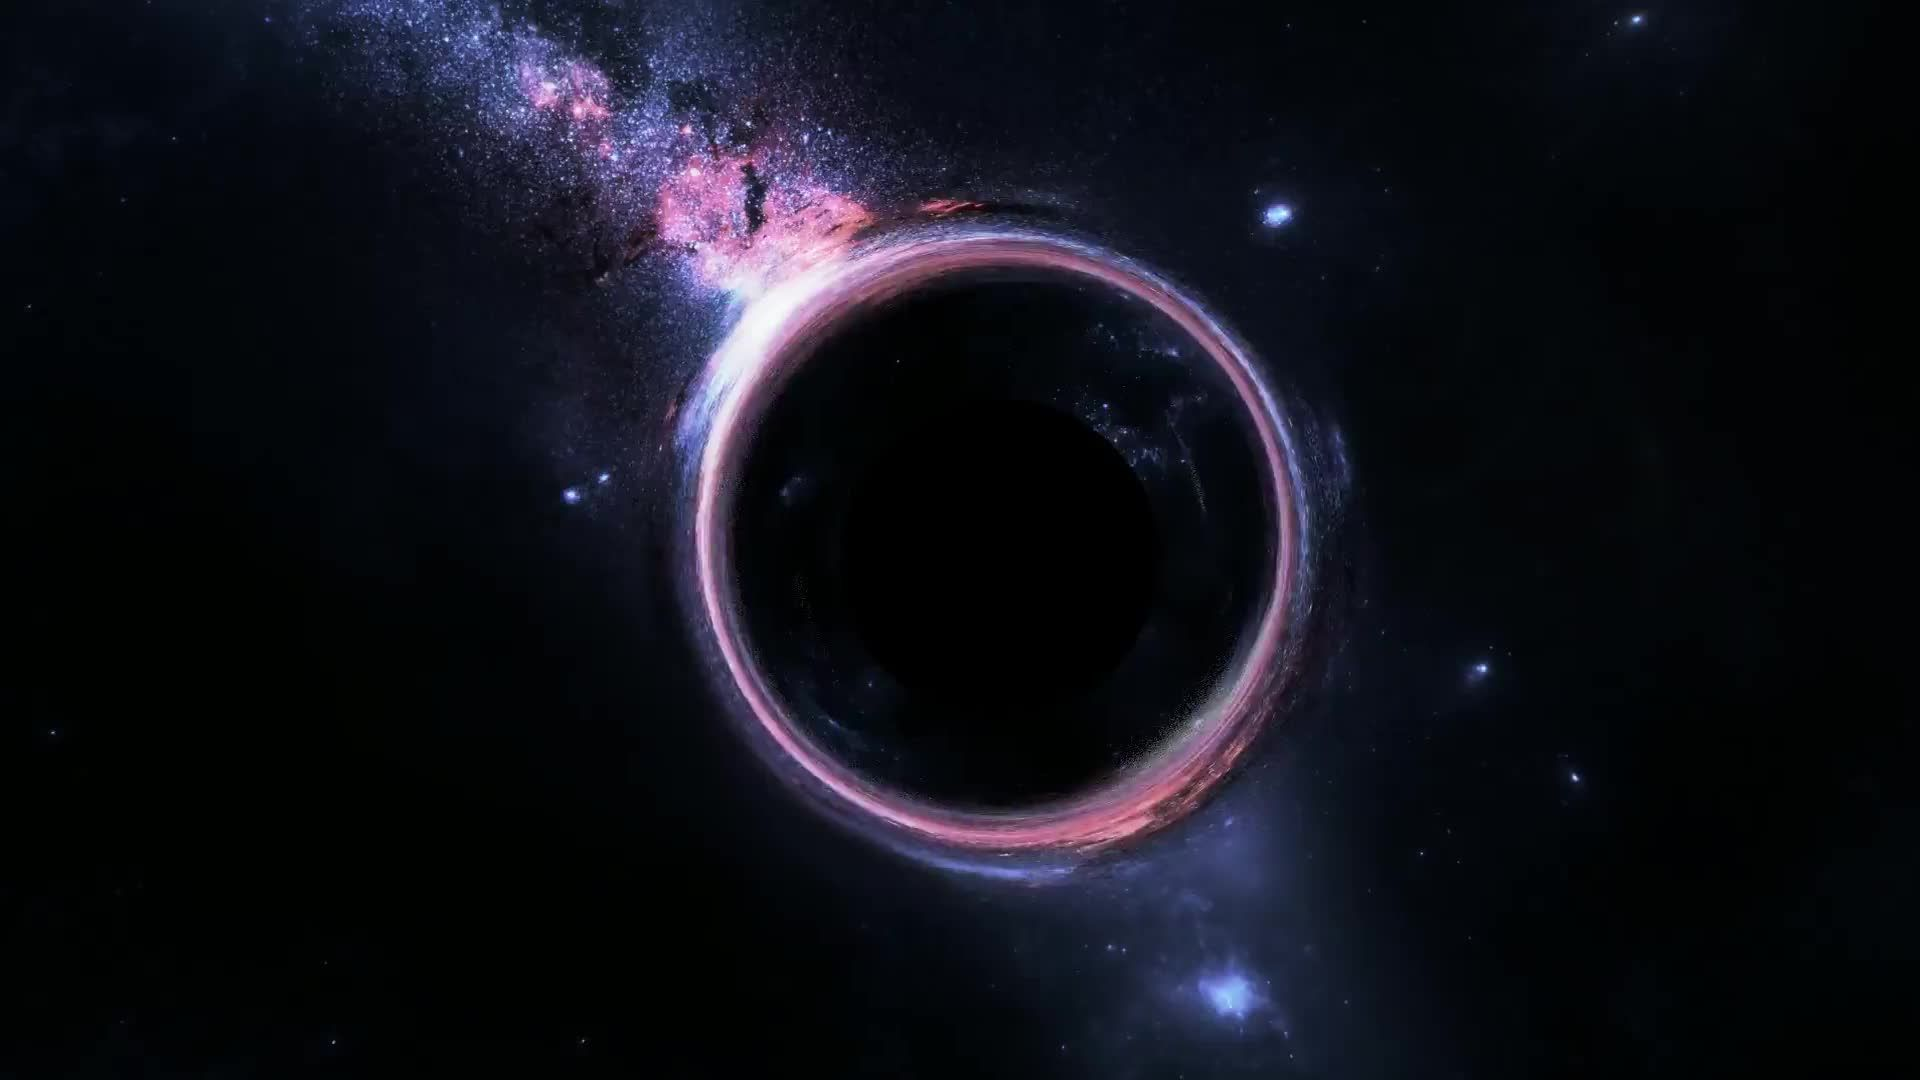 Black Hole Wallpaper Posted By Ryan Anderson